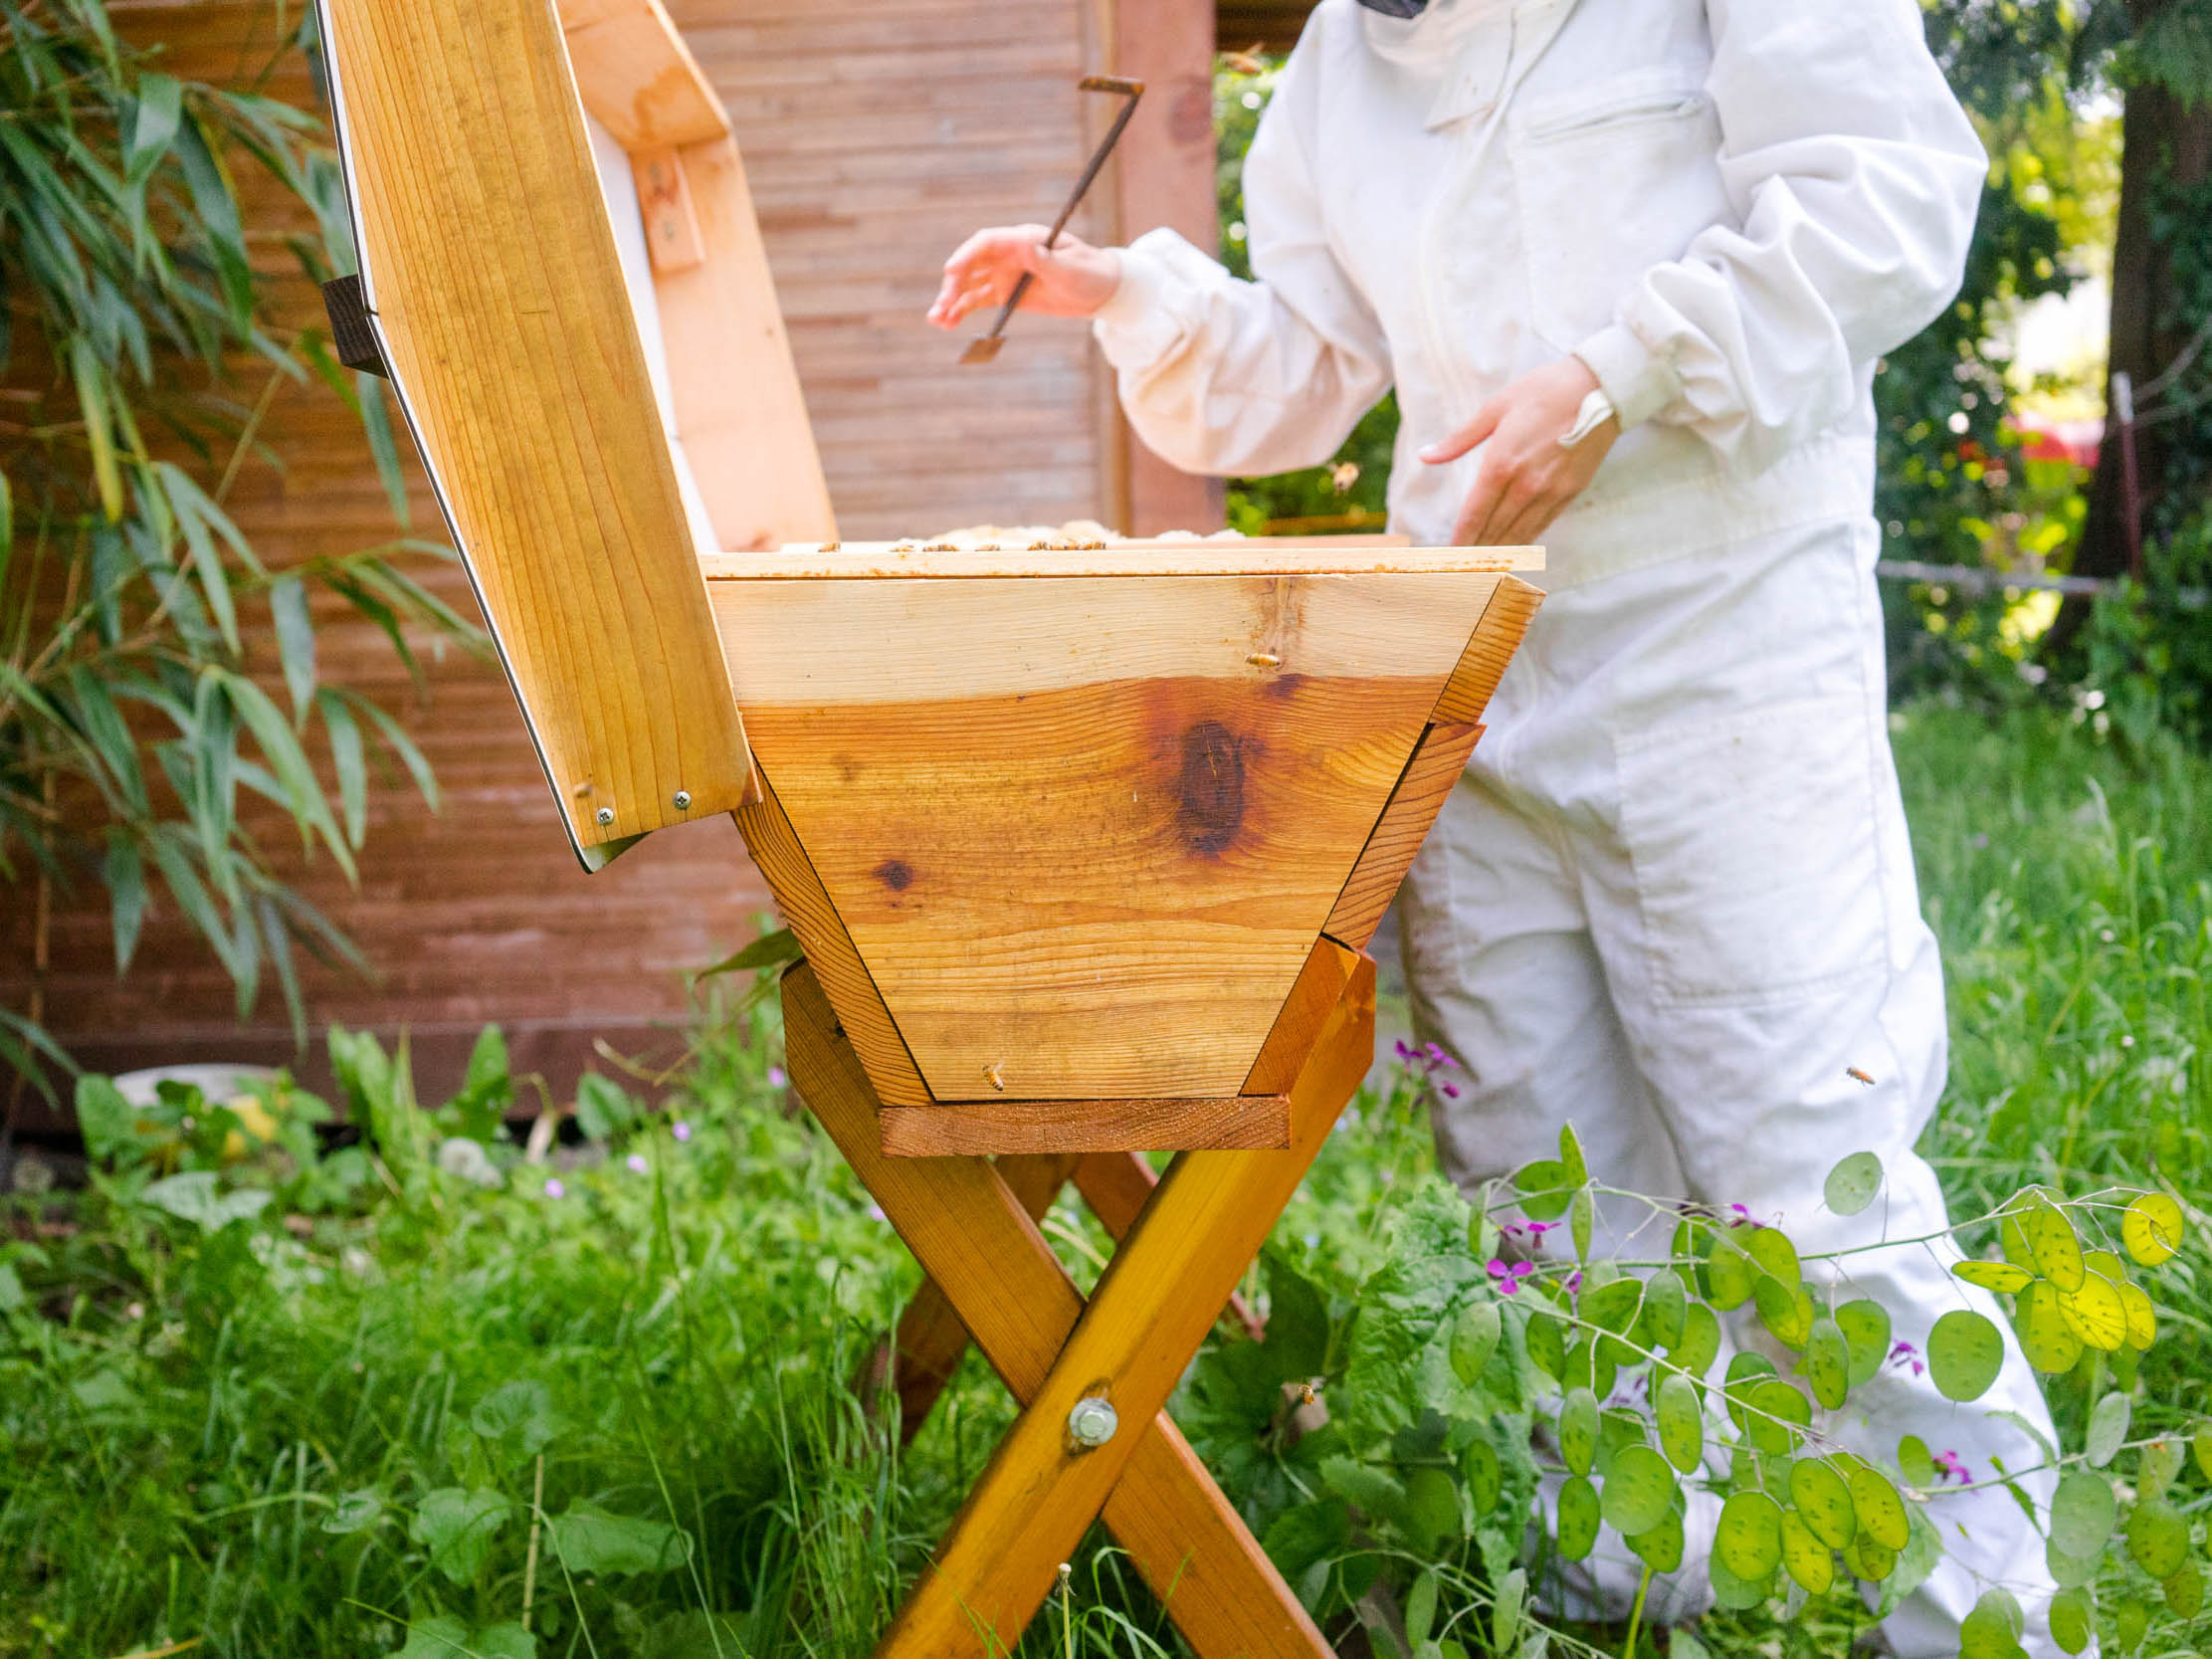 FABQs: Where Should I Place My Hives? - by Bee & Bloom